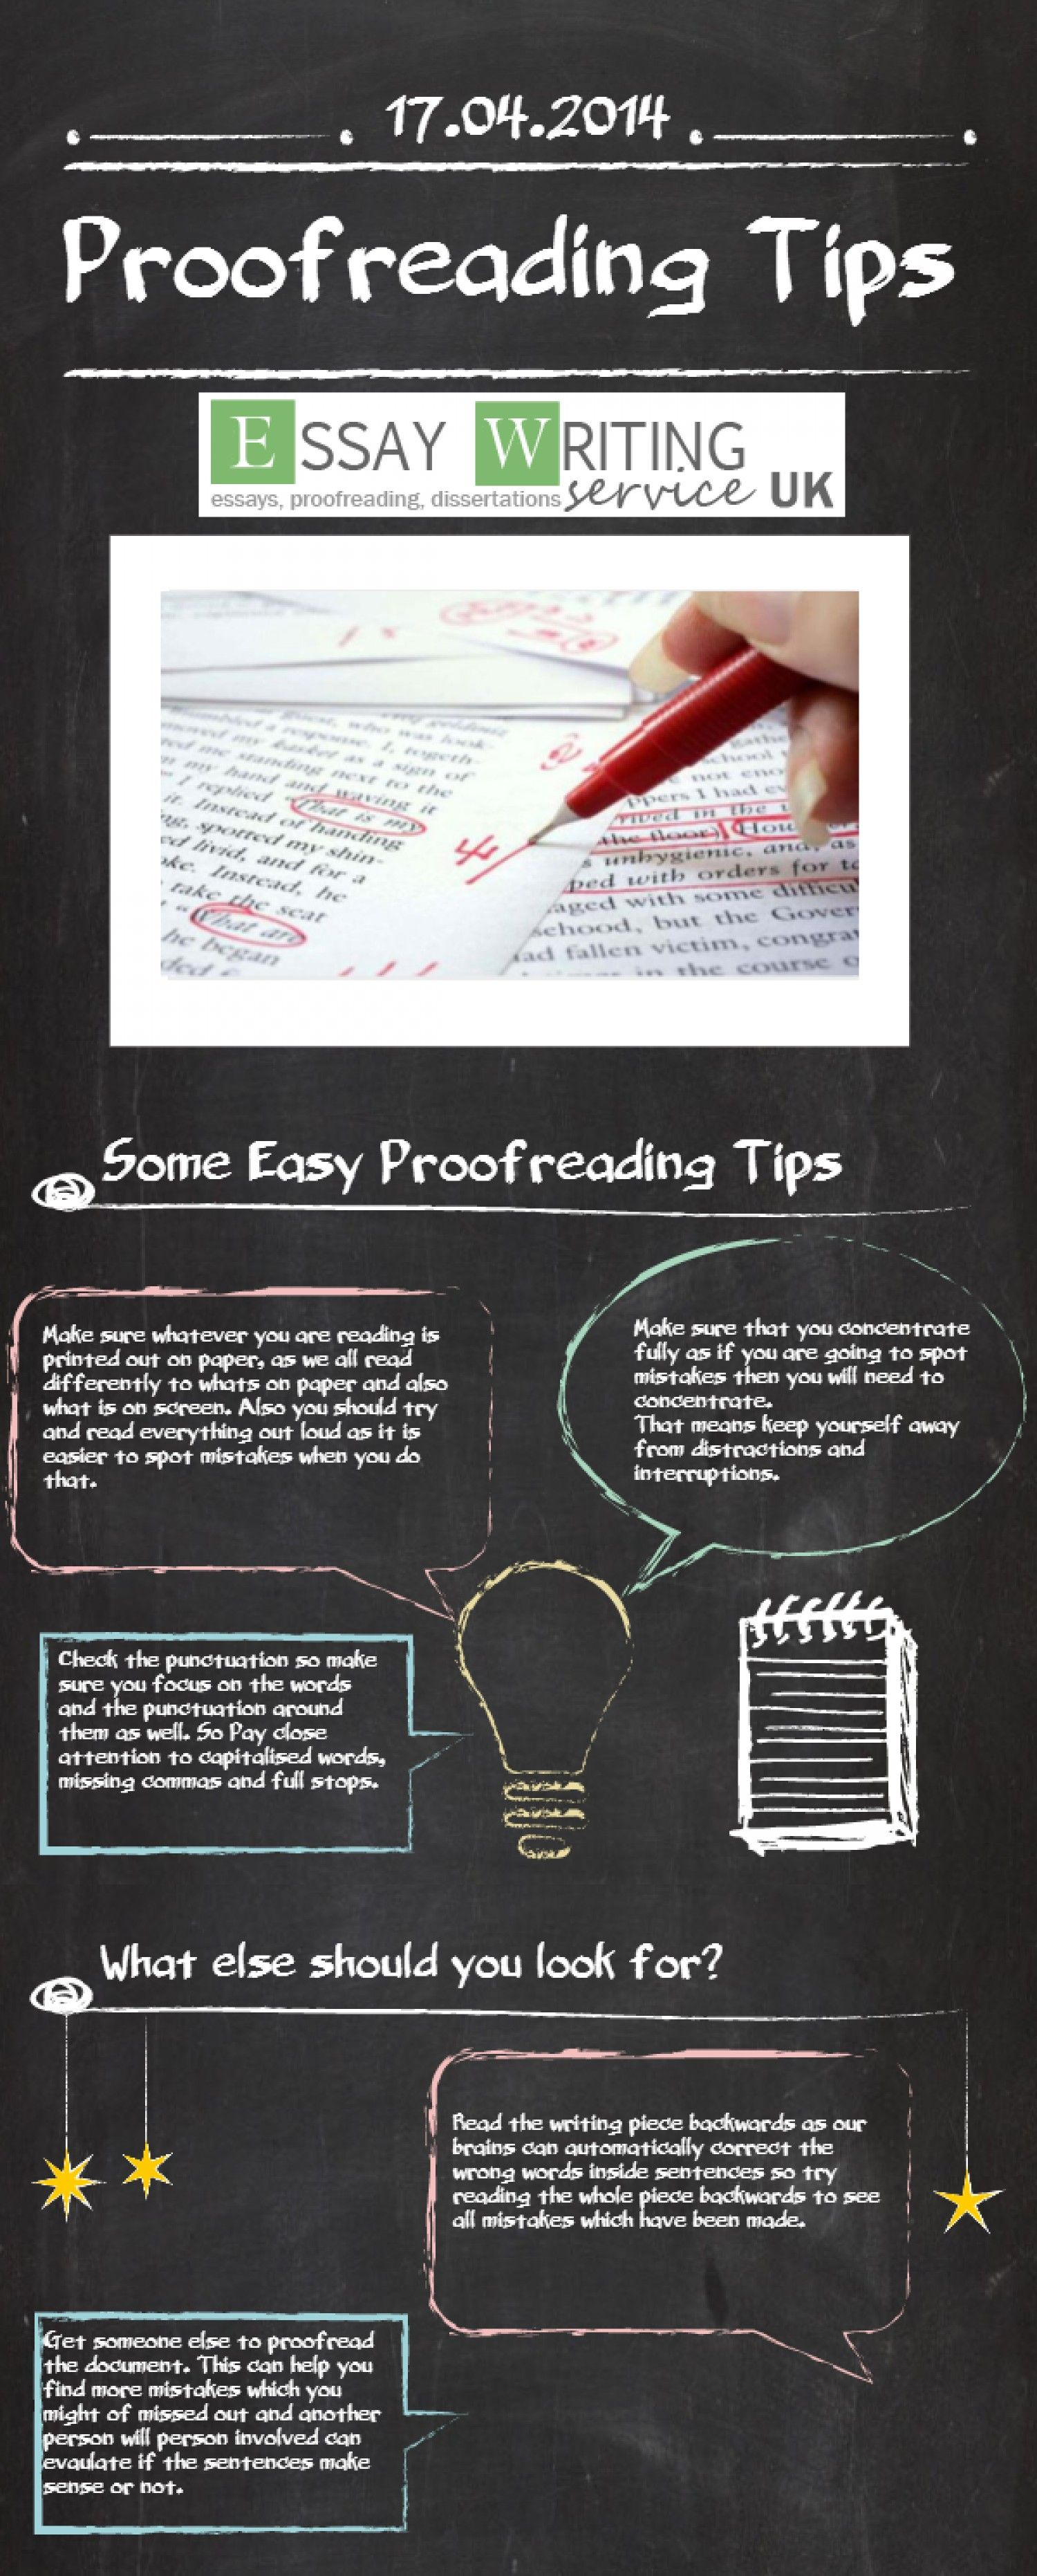 Proofreading Tips Infographic Perfect For Essay Writing